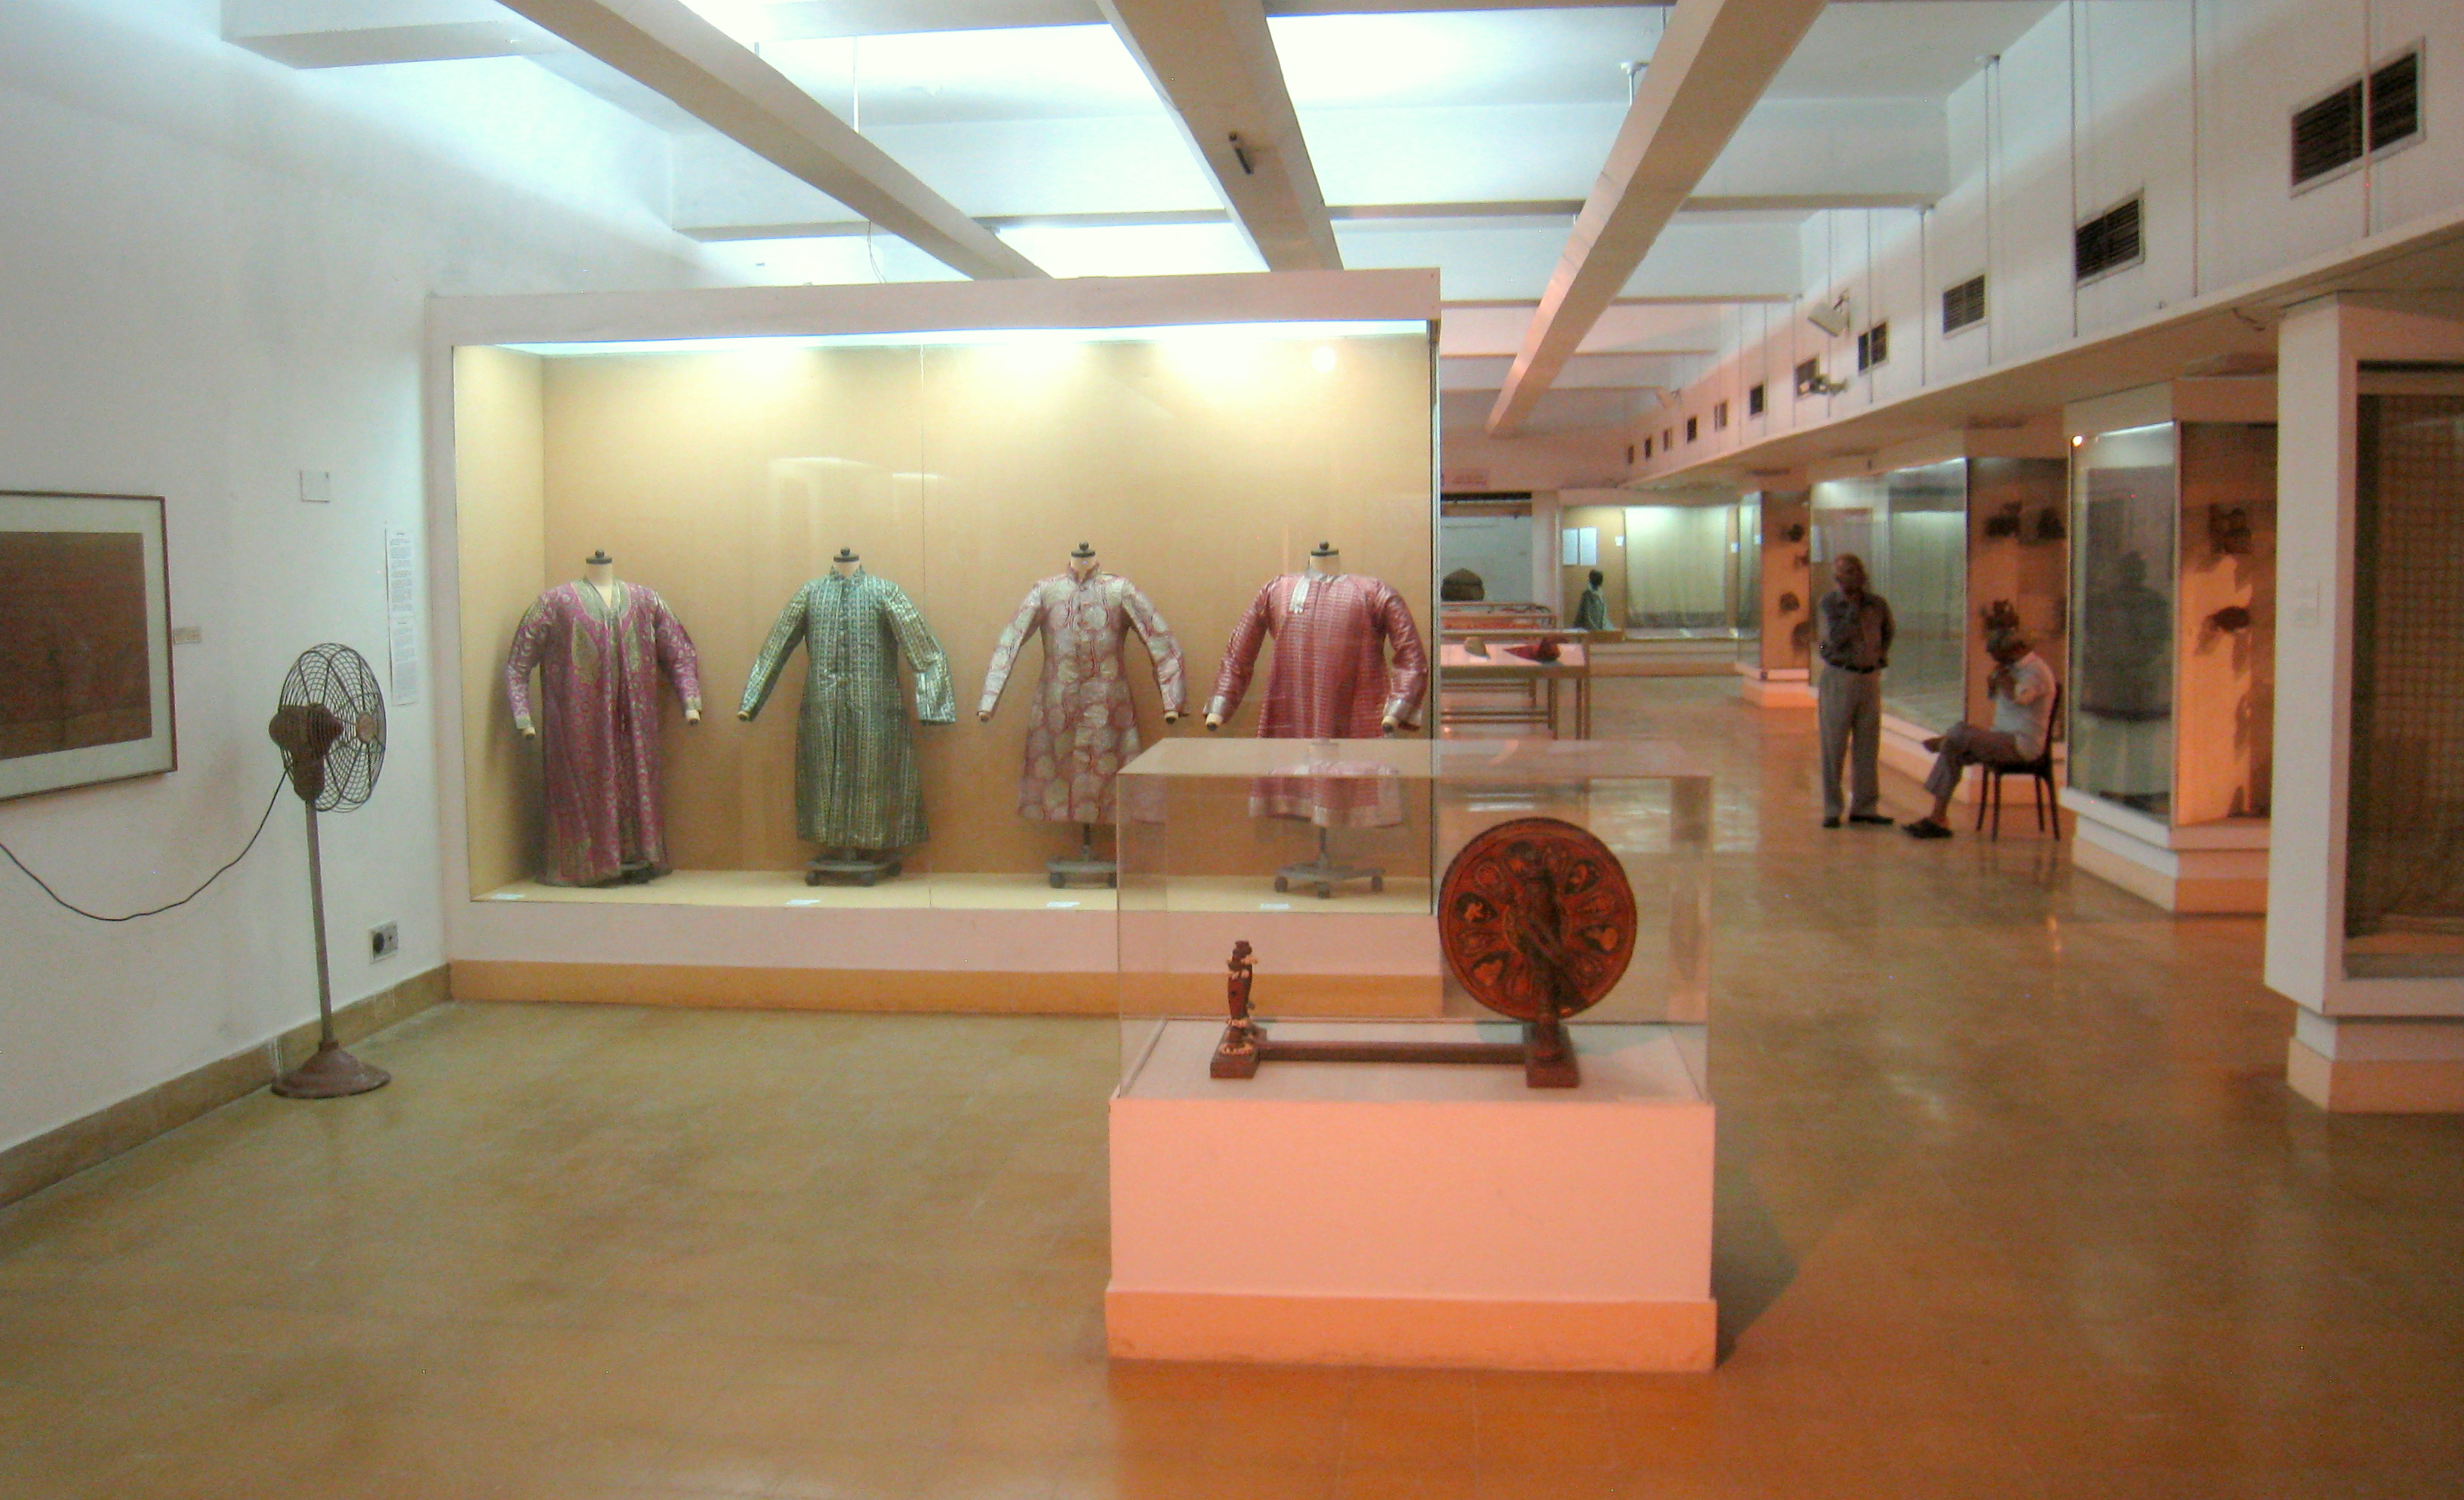 File:Interior view - National Museum, New Delhi - IMG 2269 ...